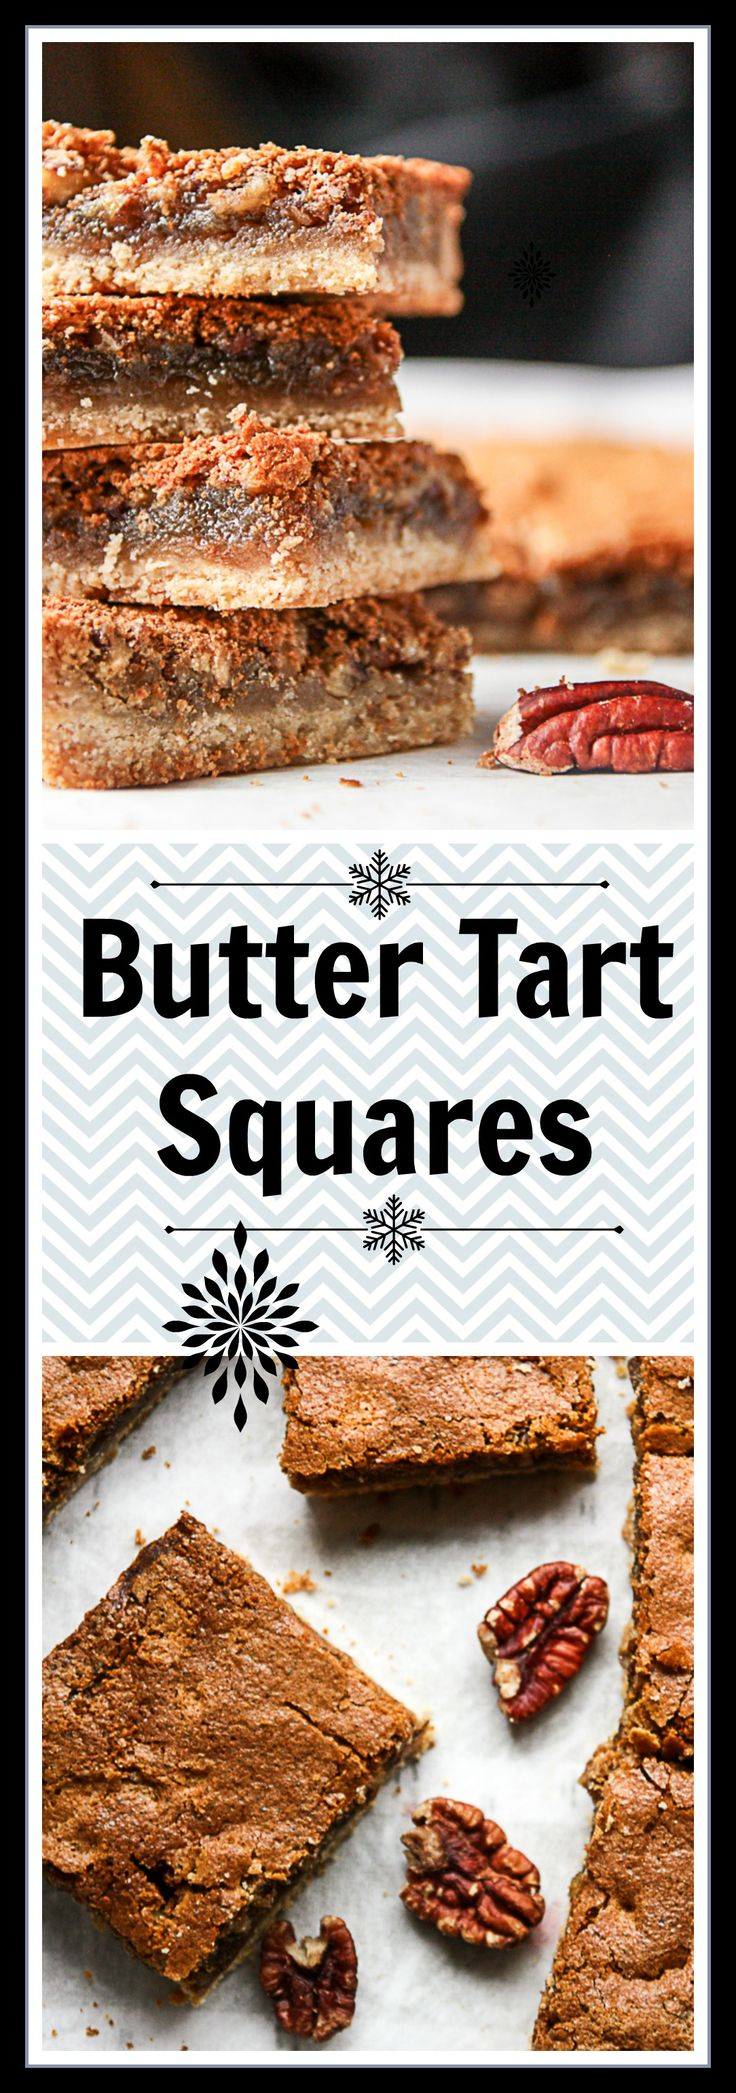 Butter Tart Squares are all the gooey goodness of a butter tart, only in a square. A shortbread crust as the base makes these treats extra delicious.